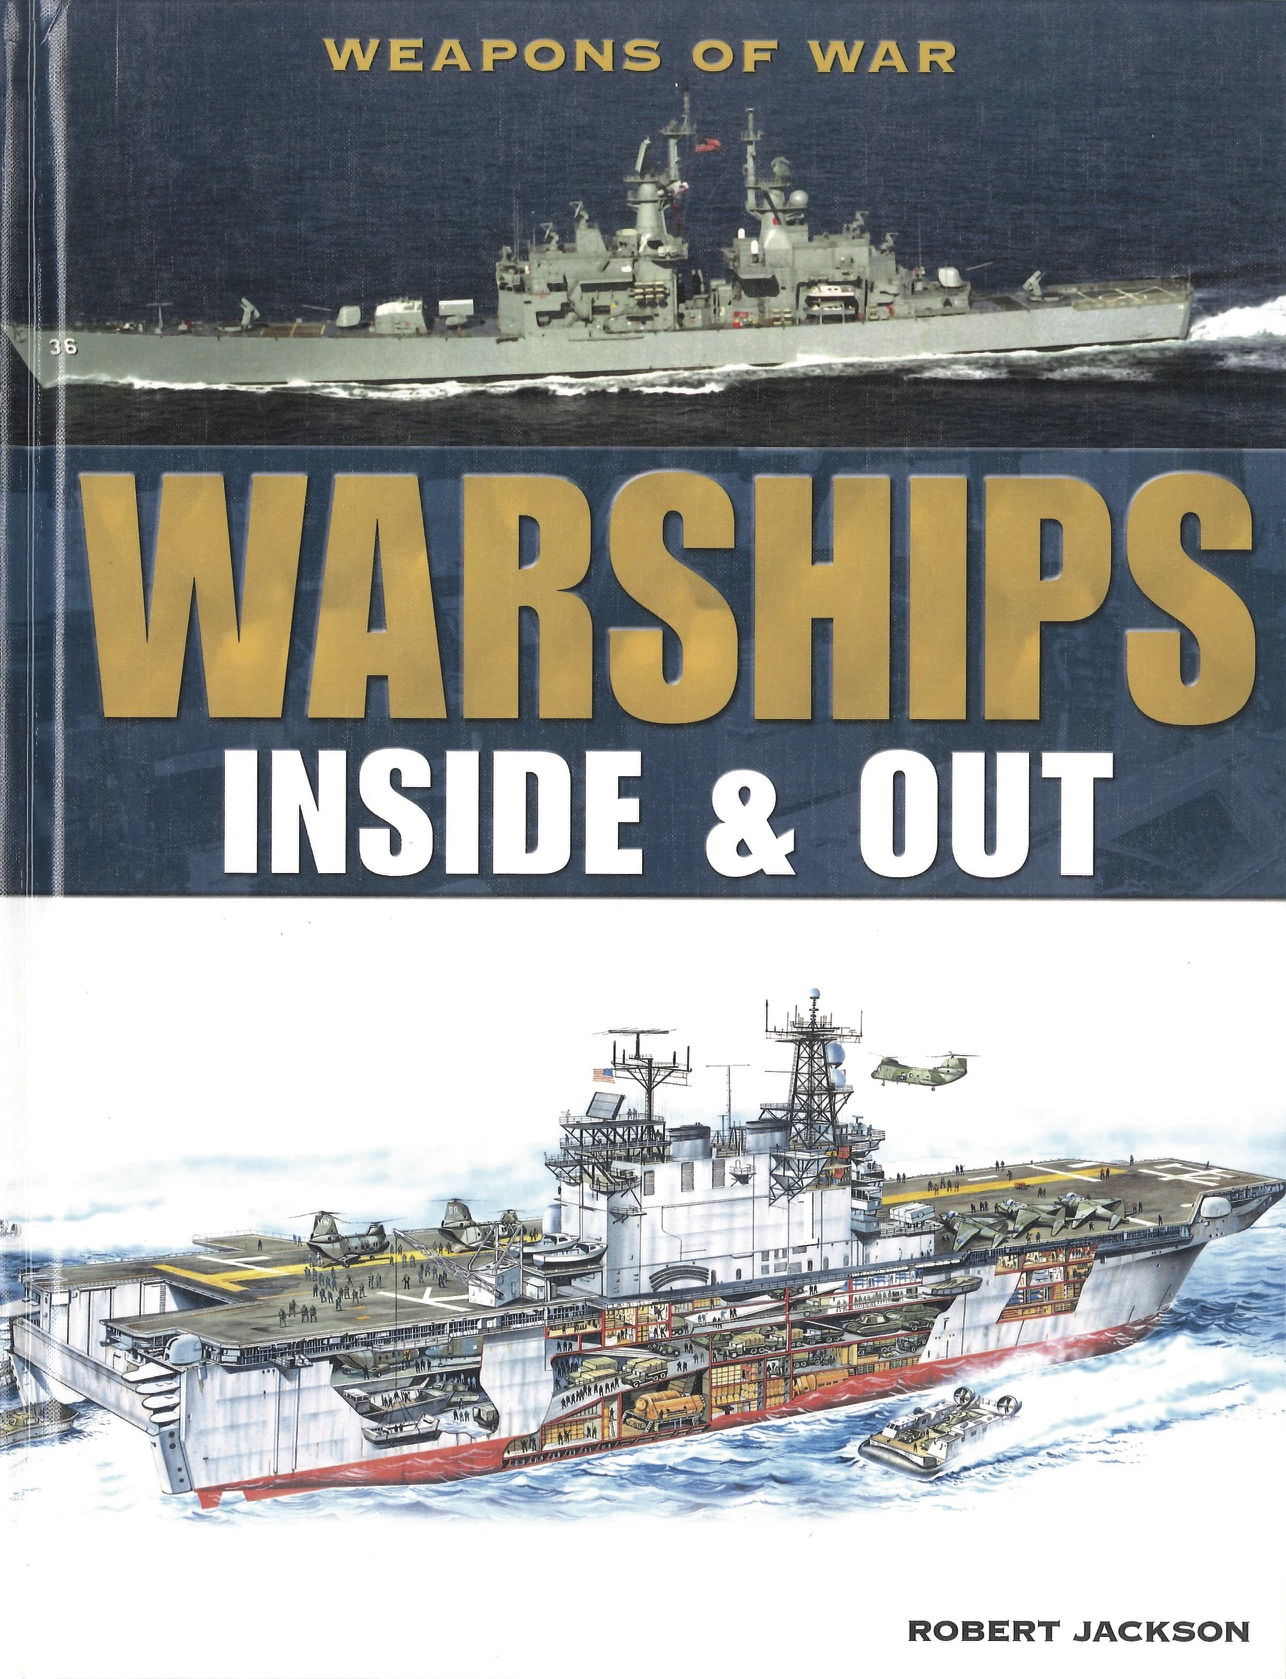 Inside & Out: Warships